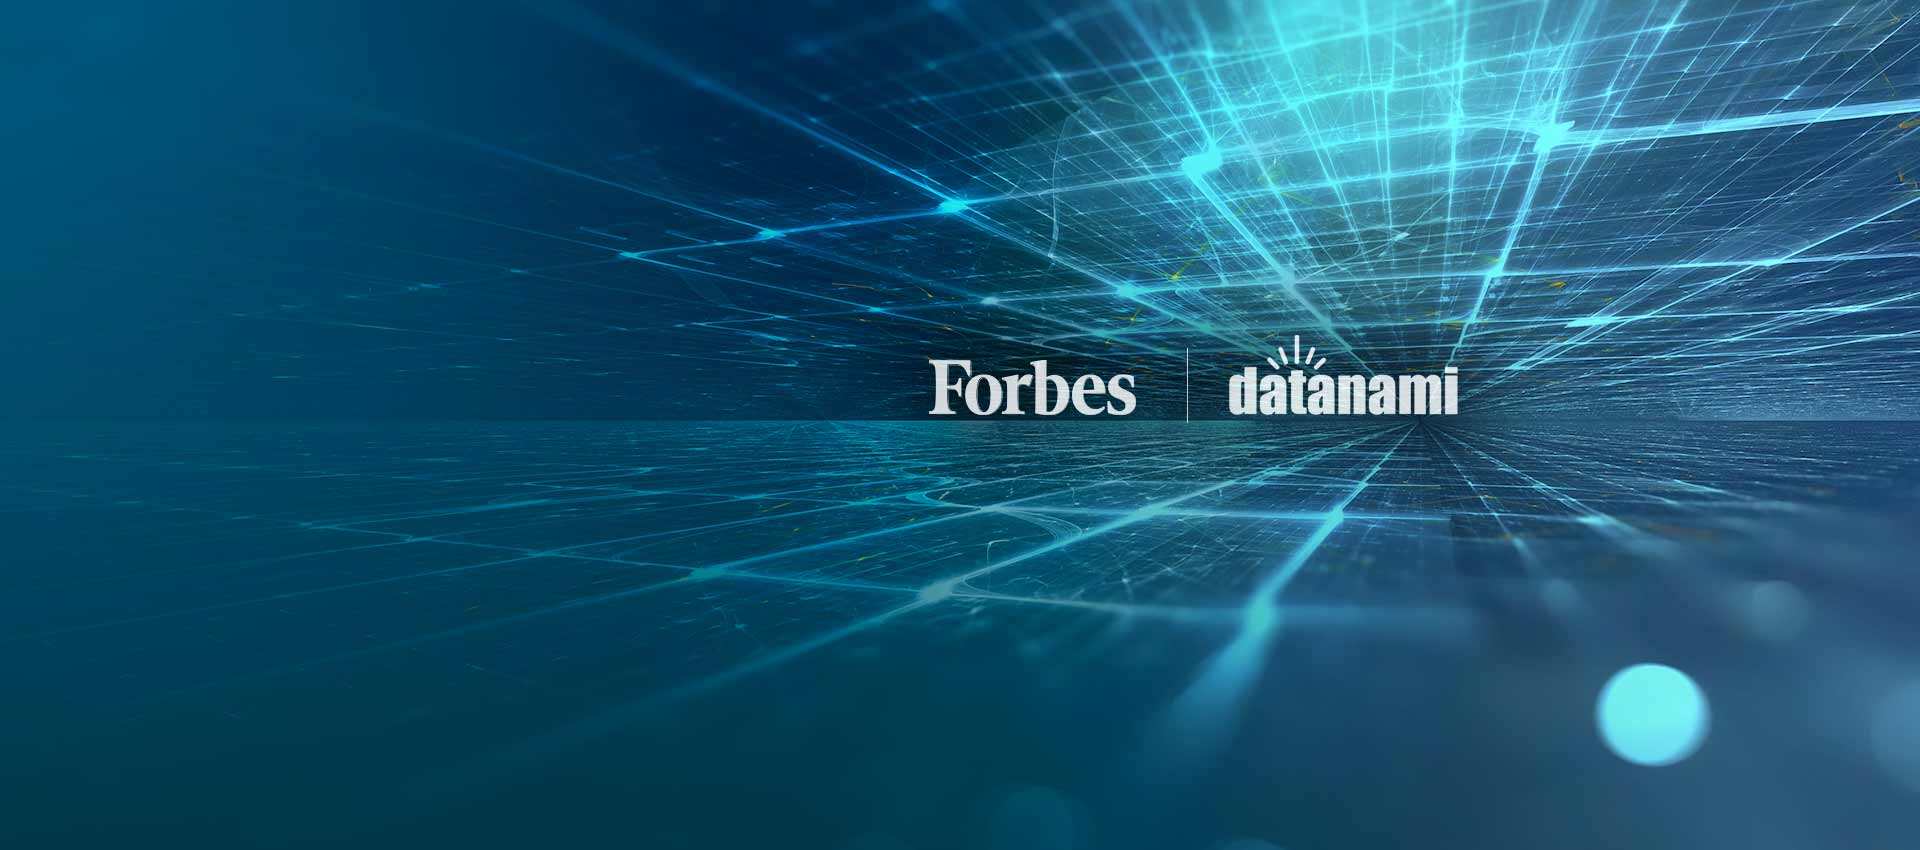 C3 IoT - C3 IoT awarded Forbes Cloud 100 and Datanami honors